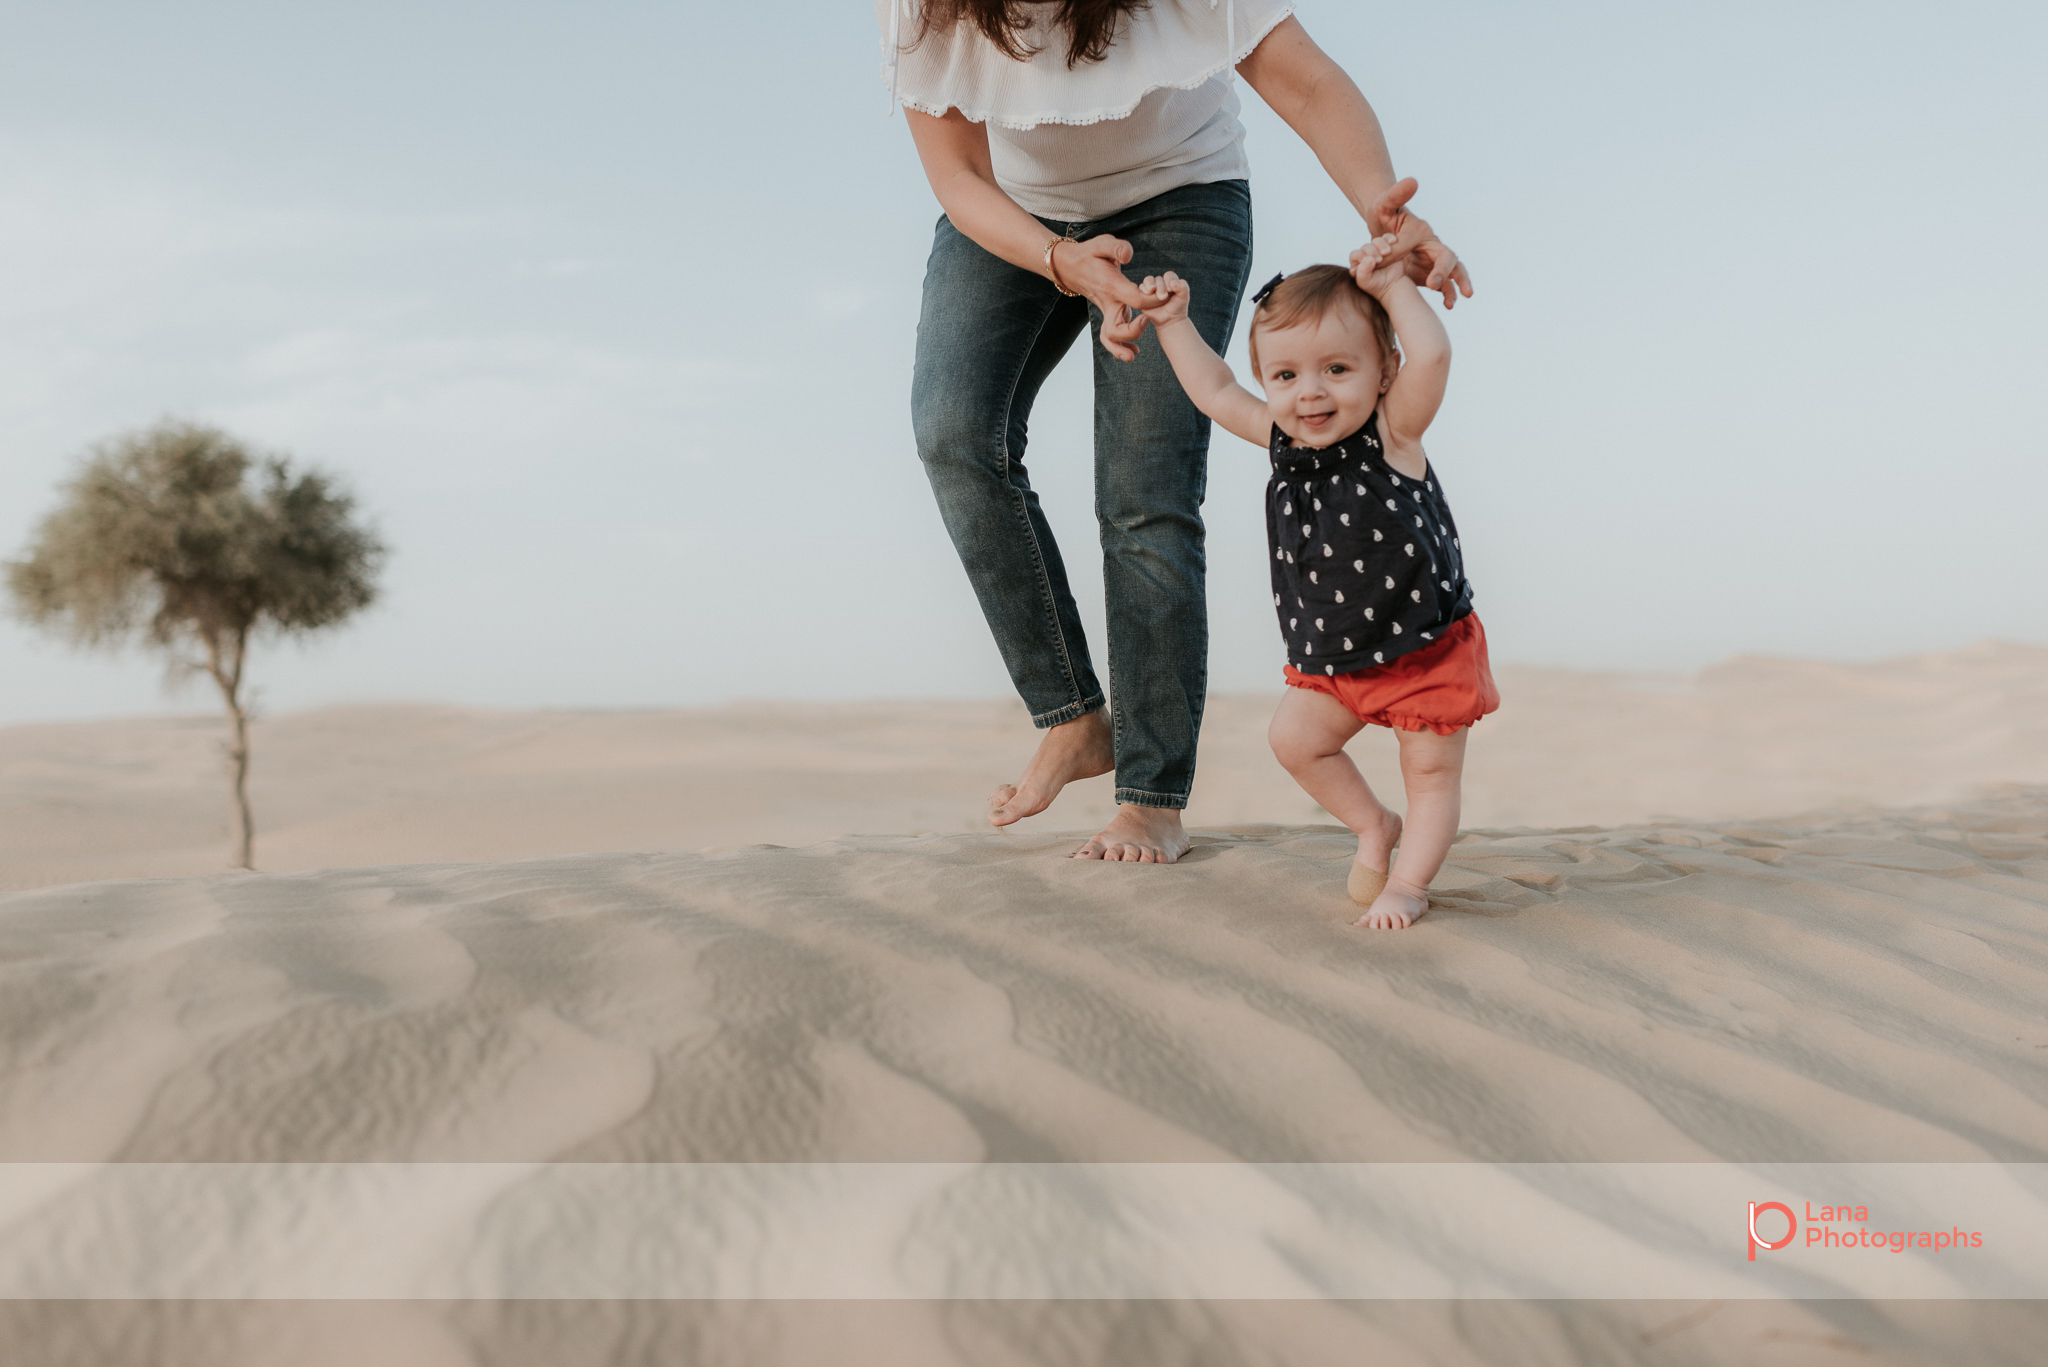 Lana Photographs Family Photographer Dubai Top Family Photographers mother walking her daughter in the desert